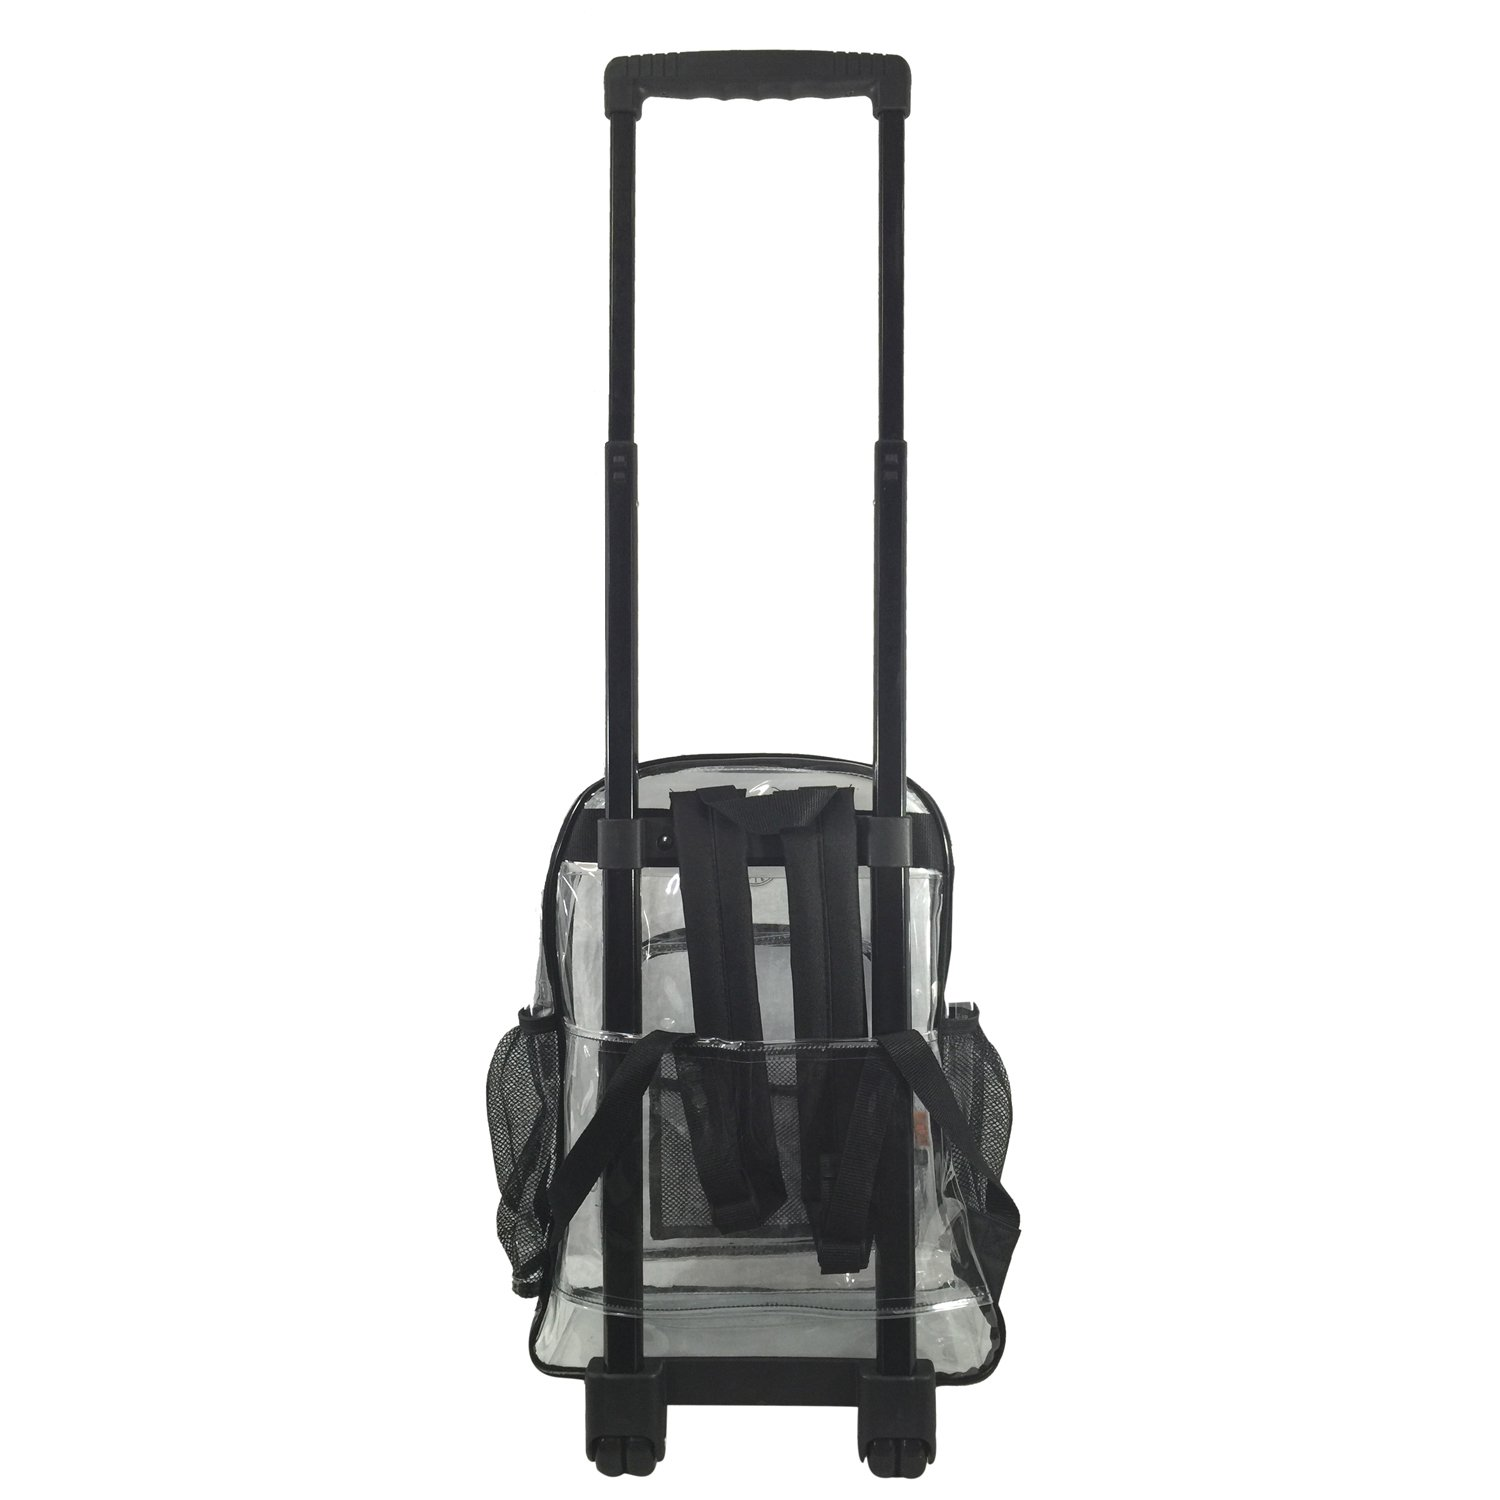 Rolling Clear Backpack Heavy Duty Bookbag Quality See Through Workbag Travel Daypack Transparent School Book Bags with Wheels Black by K-Cliffs (Image #5)